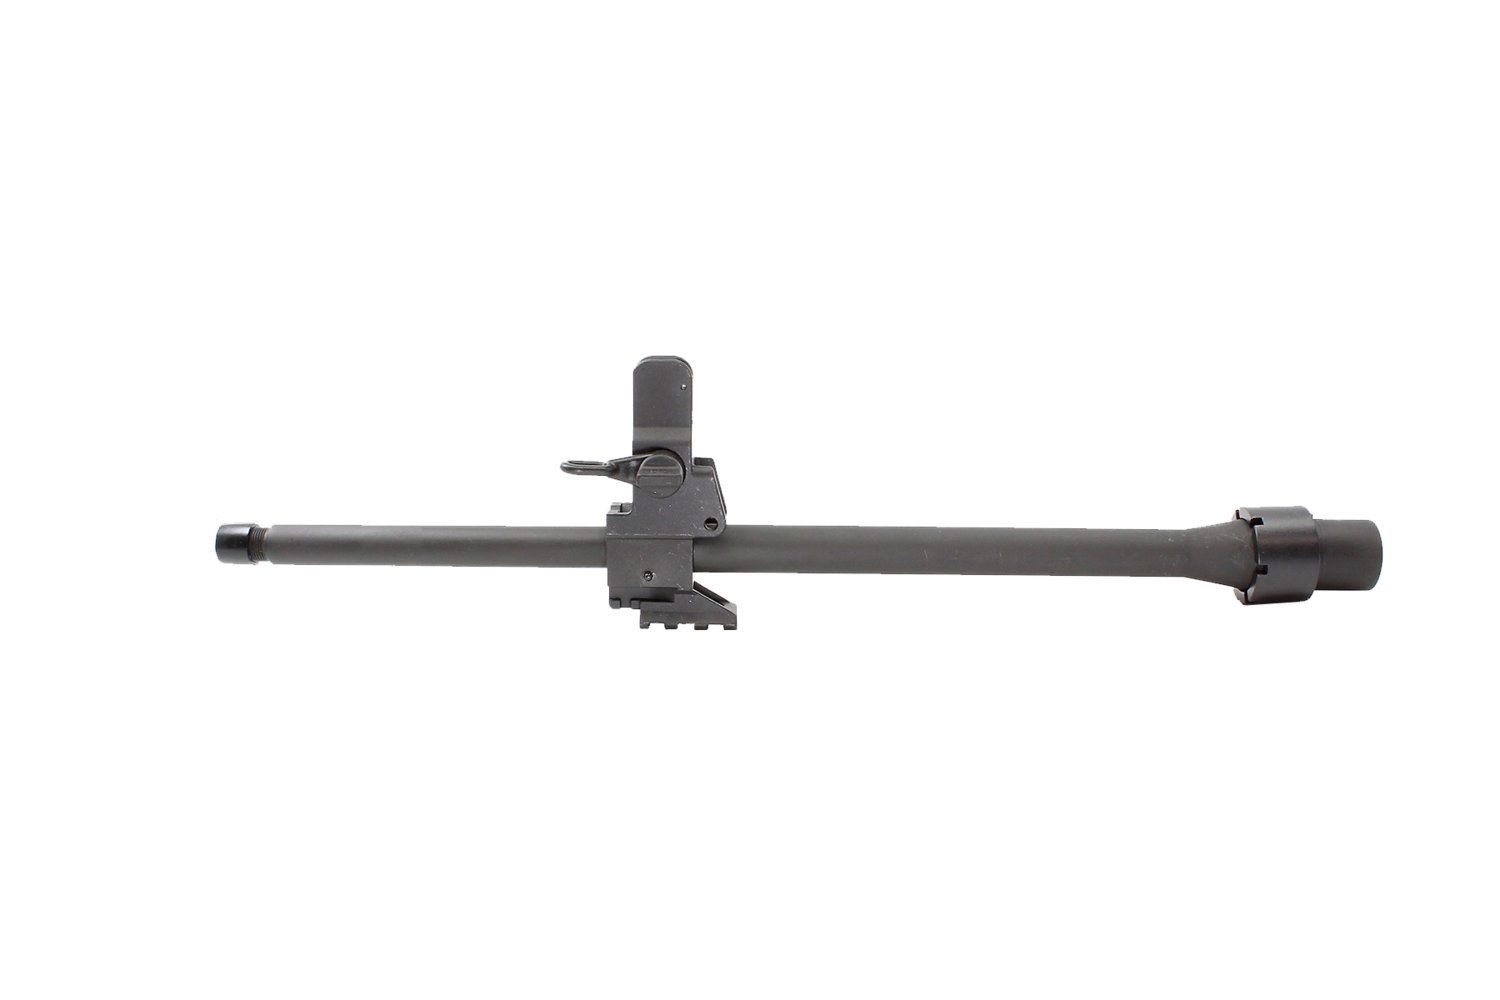 T91 14.5 inch Original 15mm MIL-SPEC Profile Chrome Lined Barrel Assembly